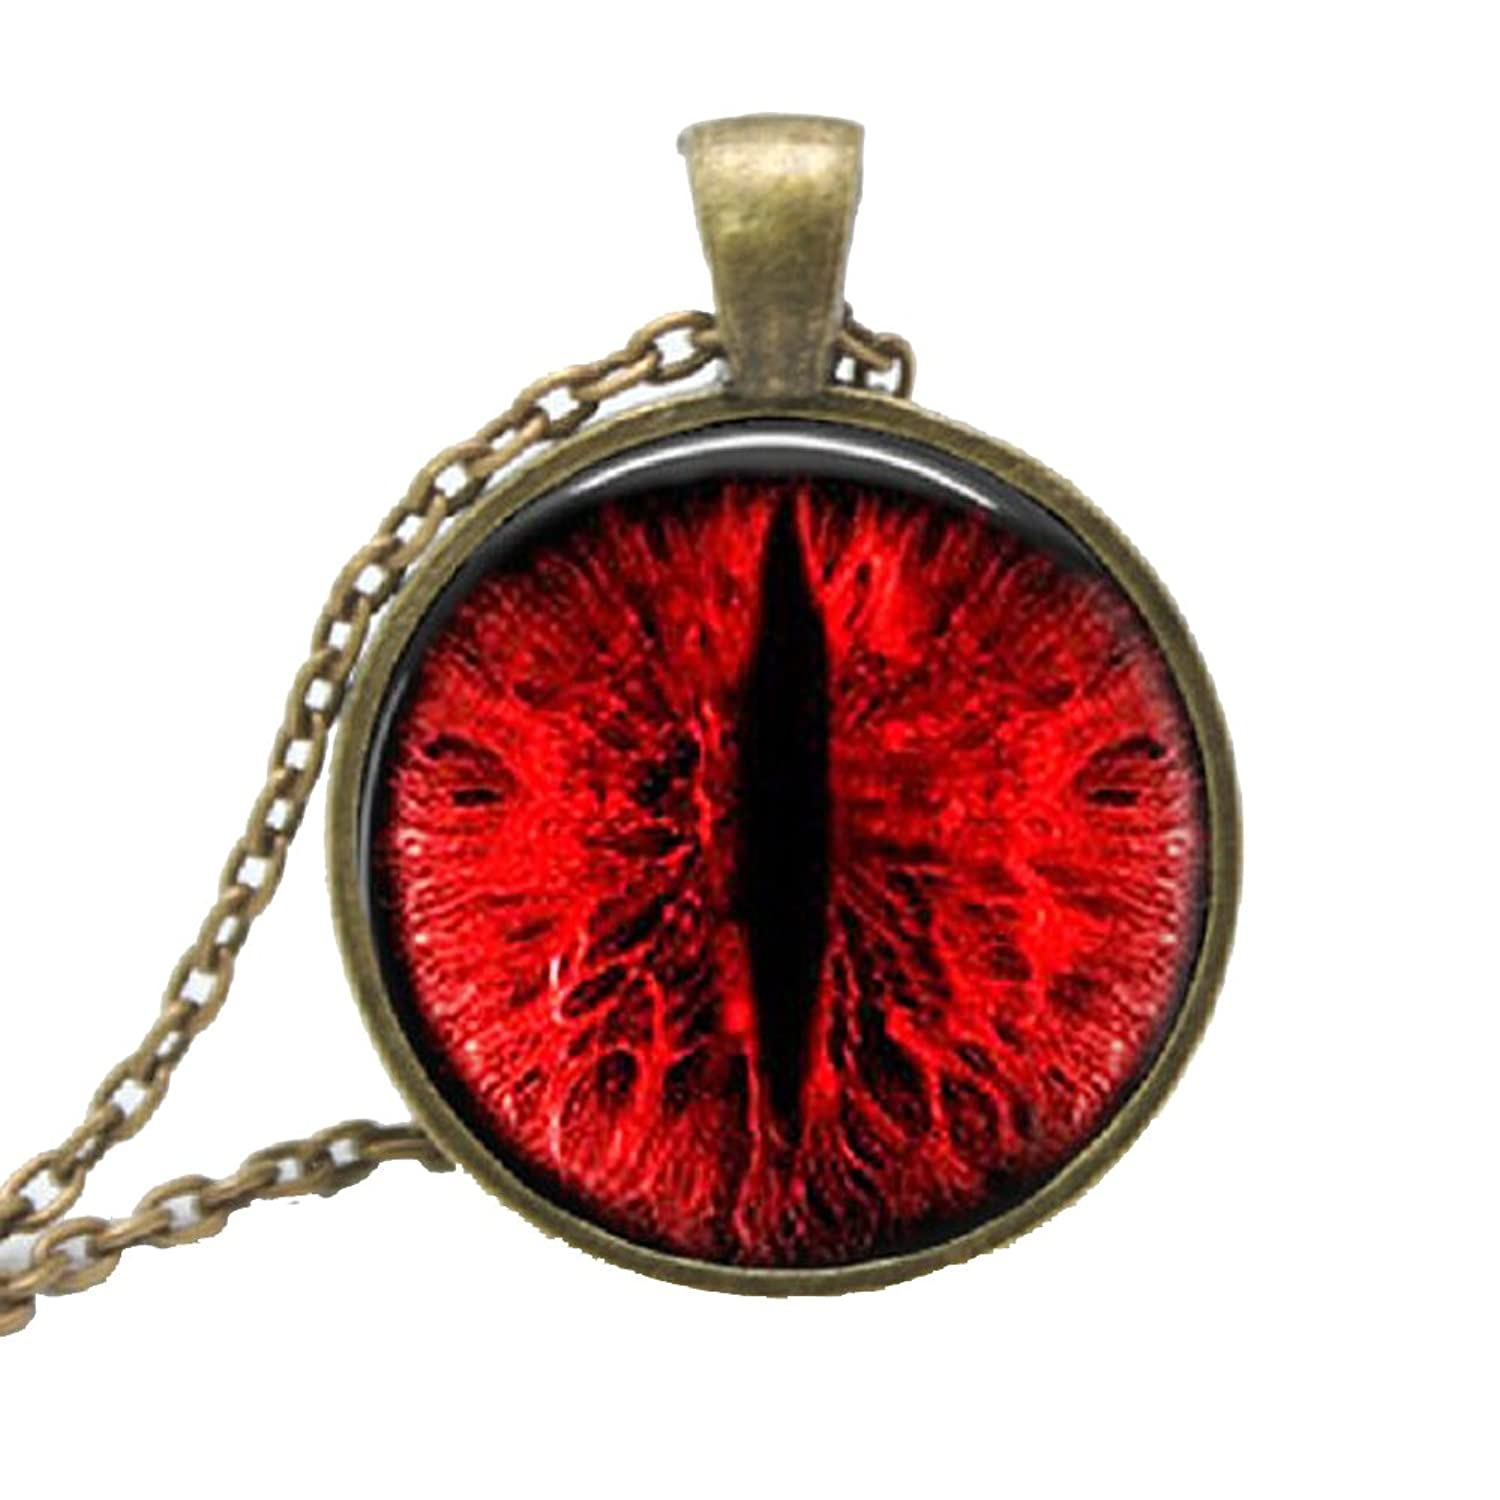 necklace product shipping evil filled eye overstock gold jewelry over free pendant jules on black orders mint chain enamel watches